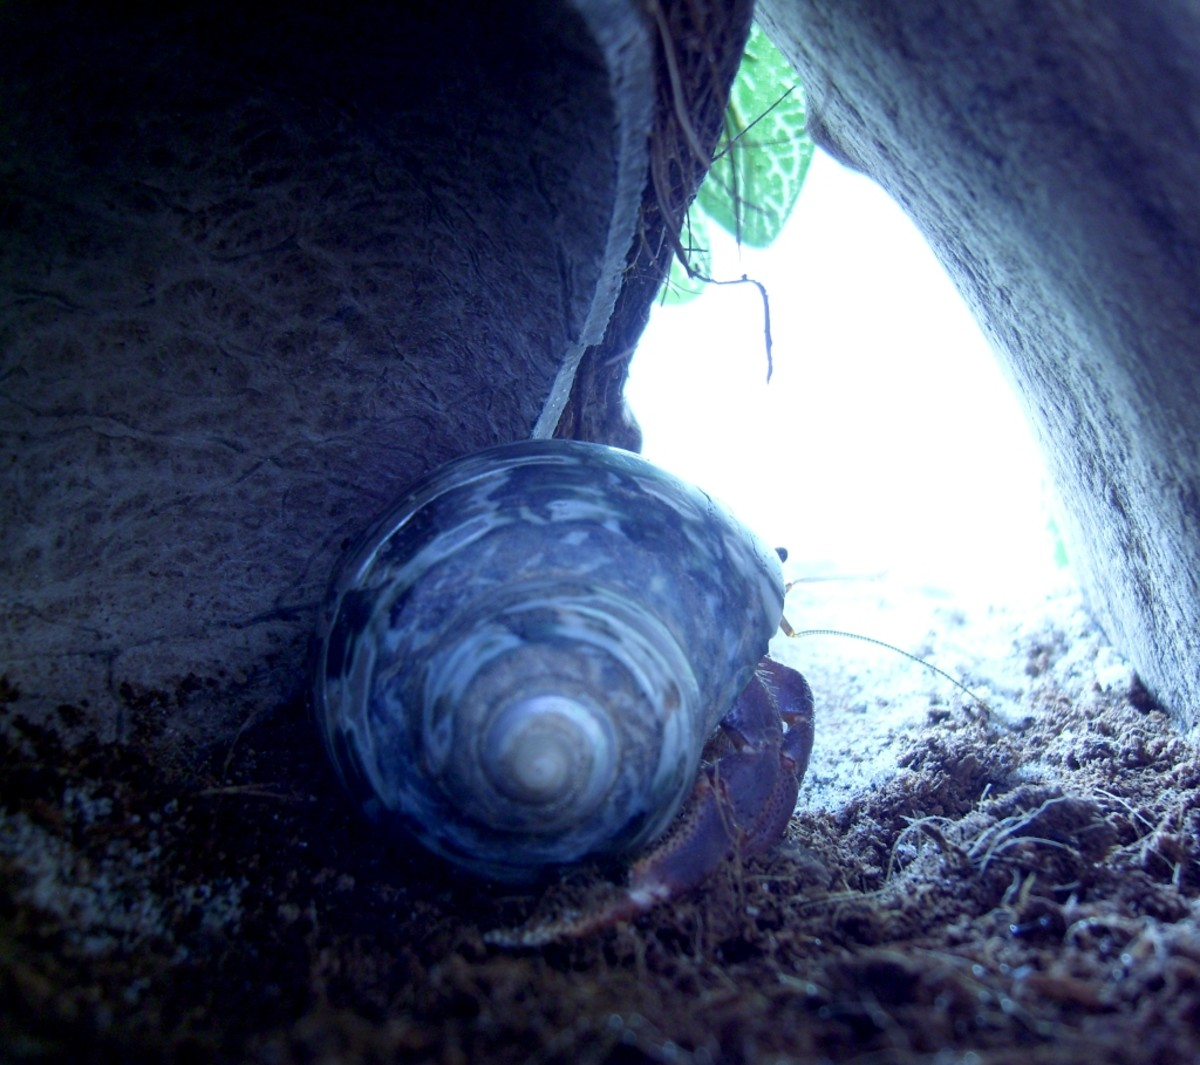 Hermit crabs like to hide and are most active at night, so they aren't always the most interesting pets to show to friends.